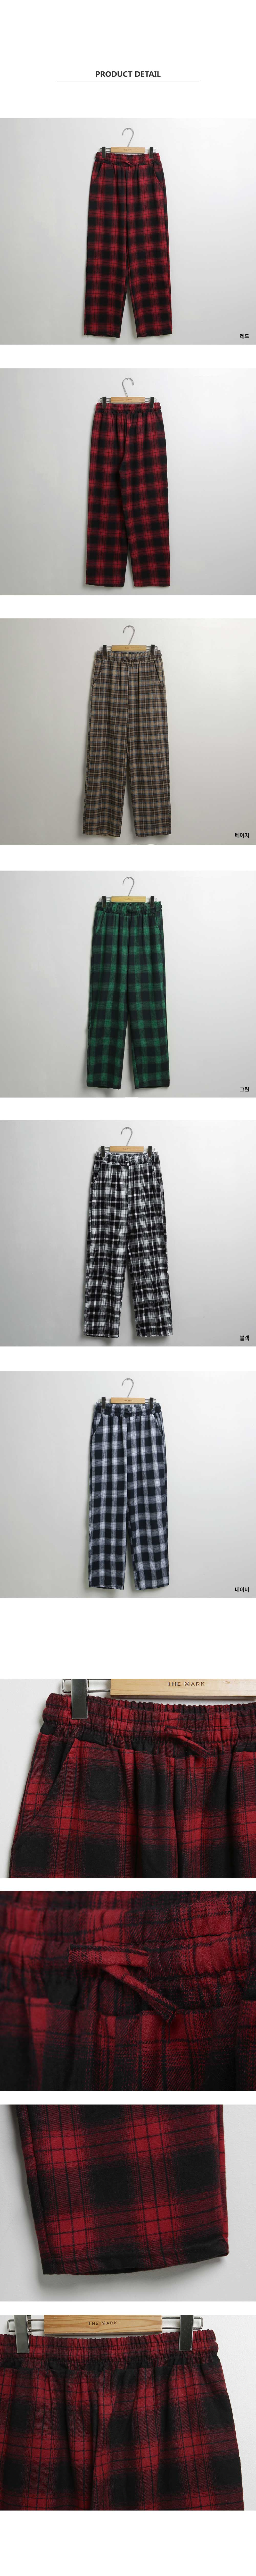 Daily Check Pants P#YW536